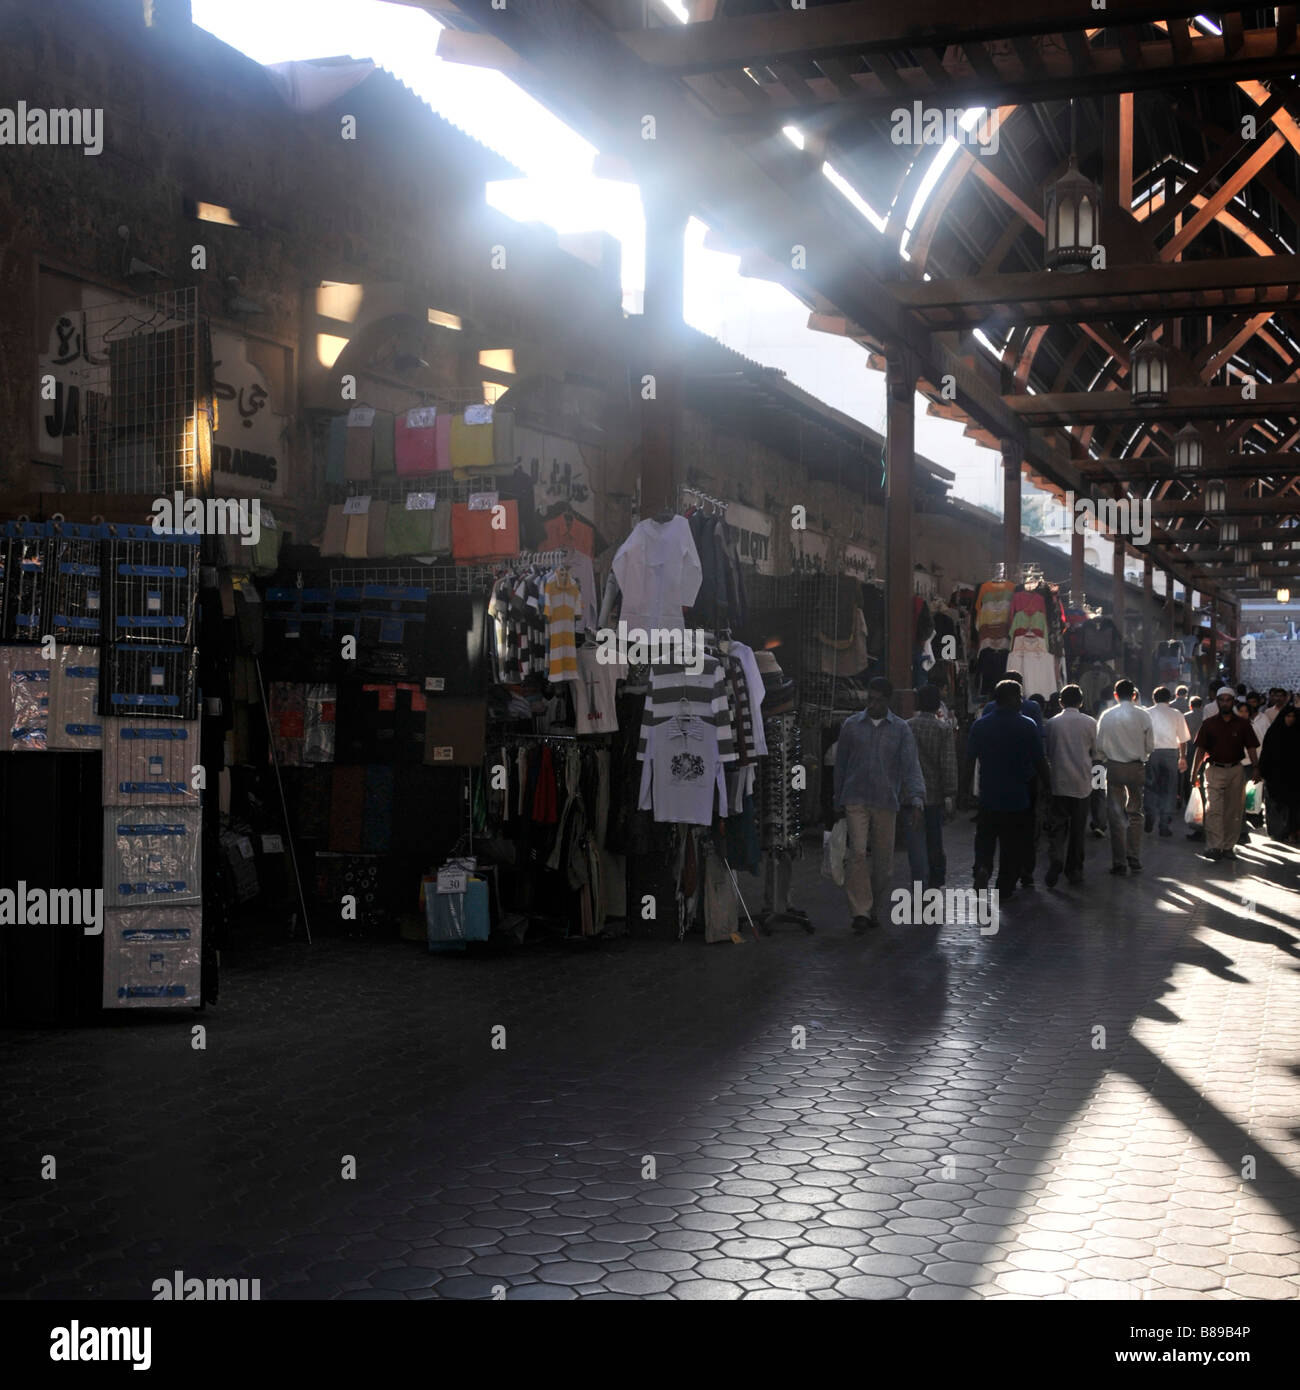 Dubai Old Souk open air market - Stock Image